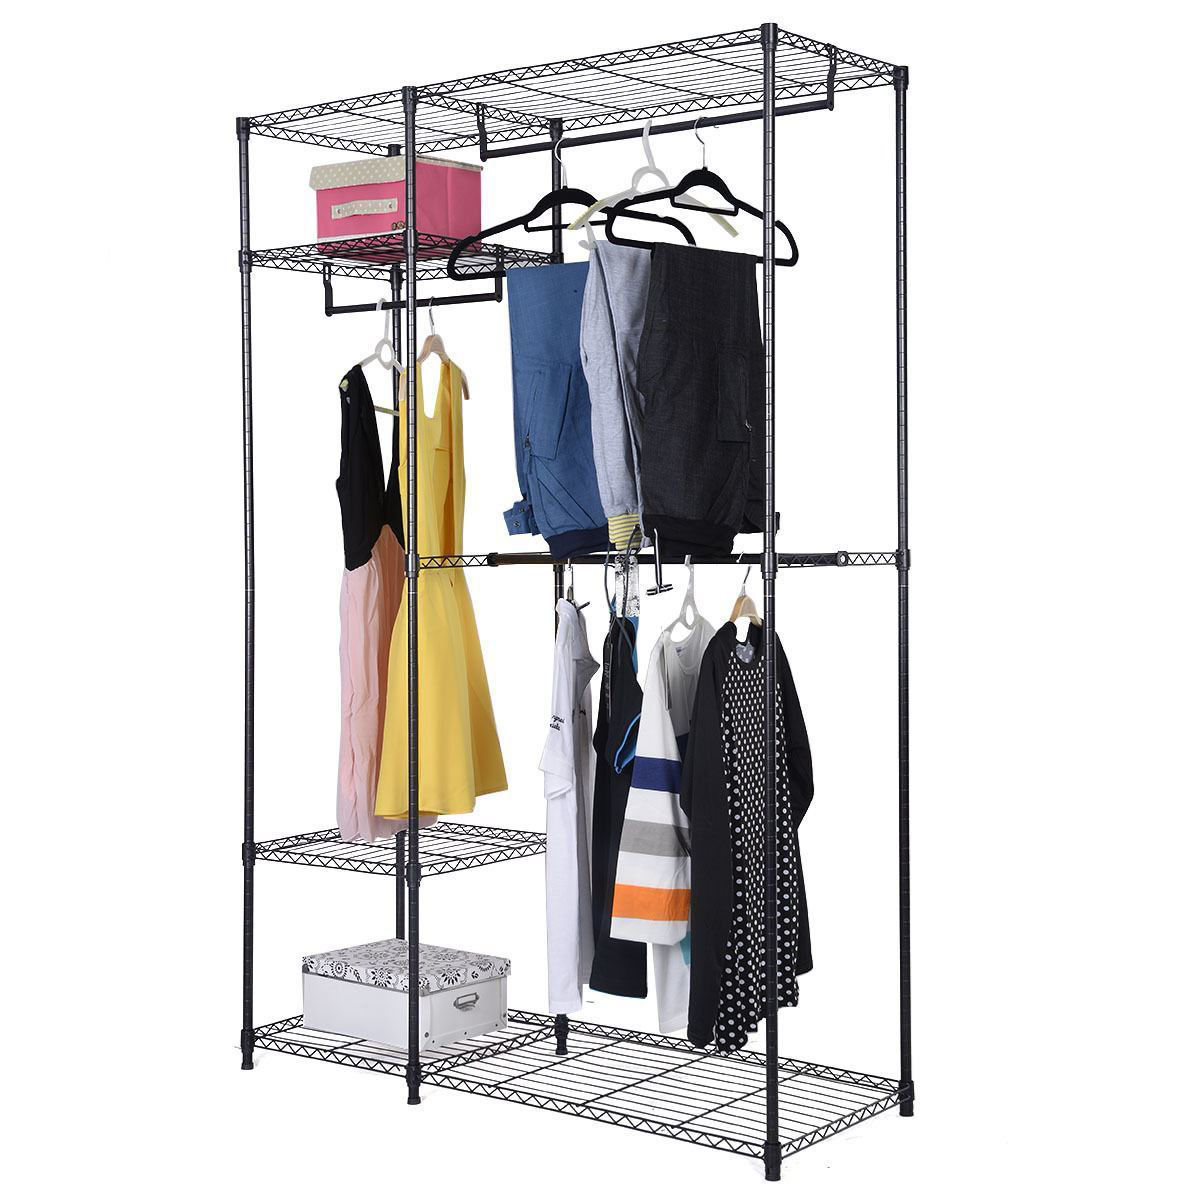 Picture of Portable Clothes Closet Organizer - 48""